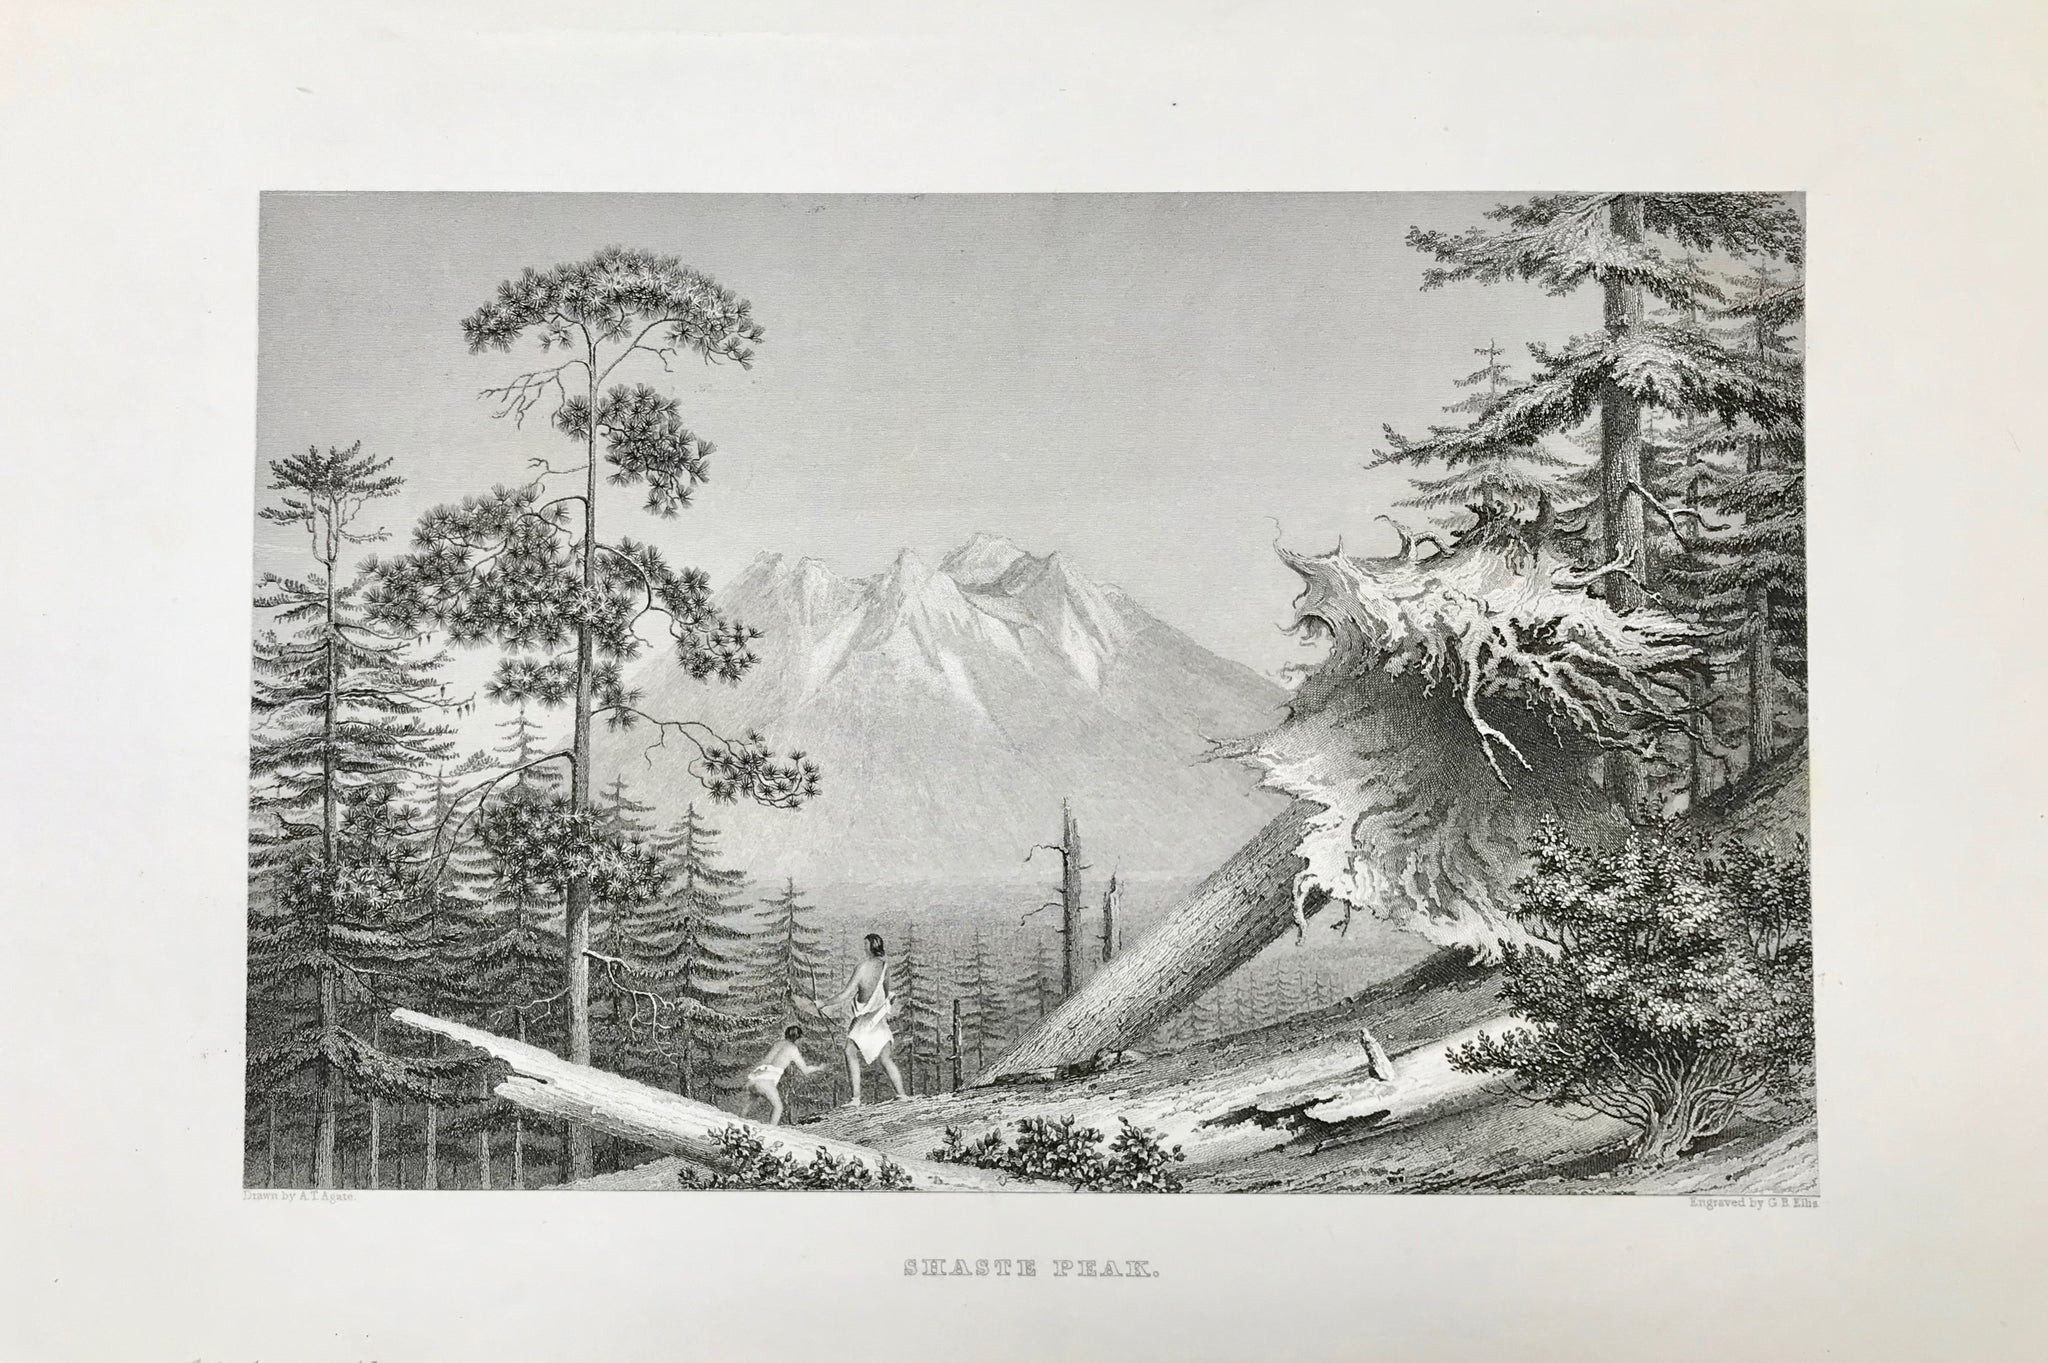 """Shasta Peak""  Very fine steel engraving by G.B. Ellis after A.T. Agate, 1845."